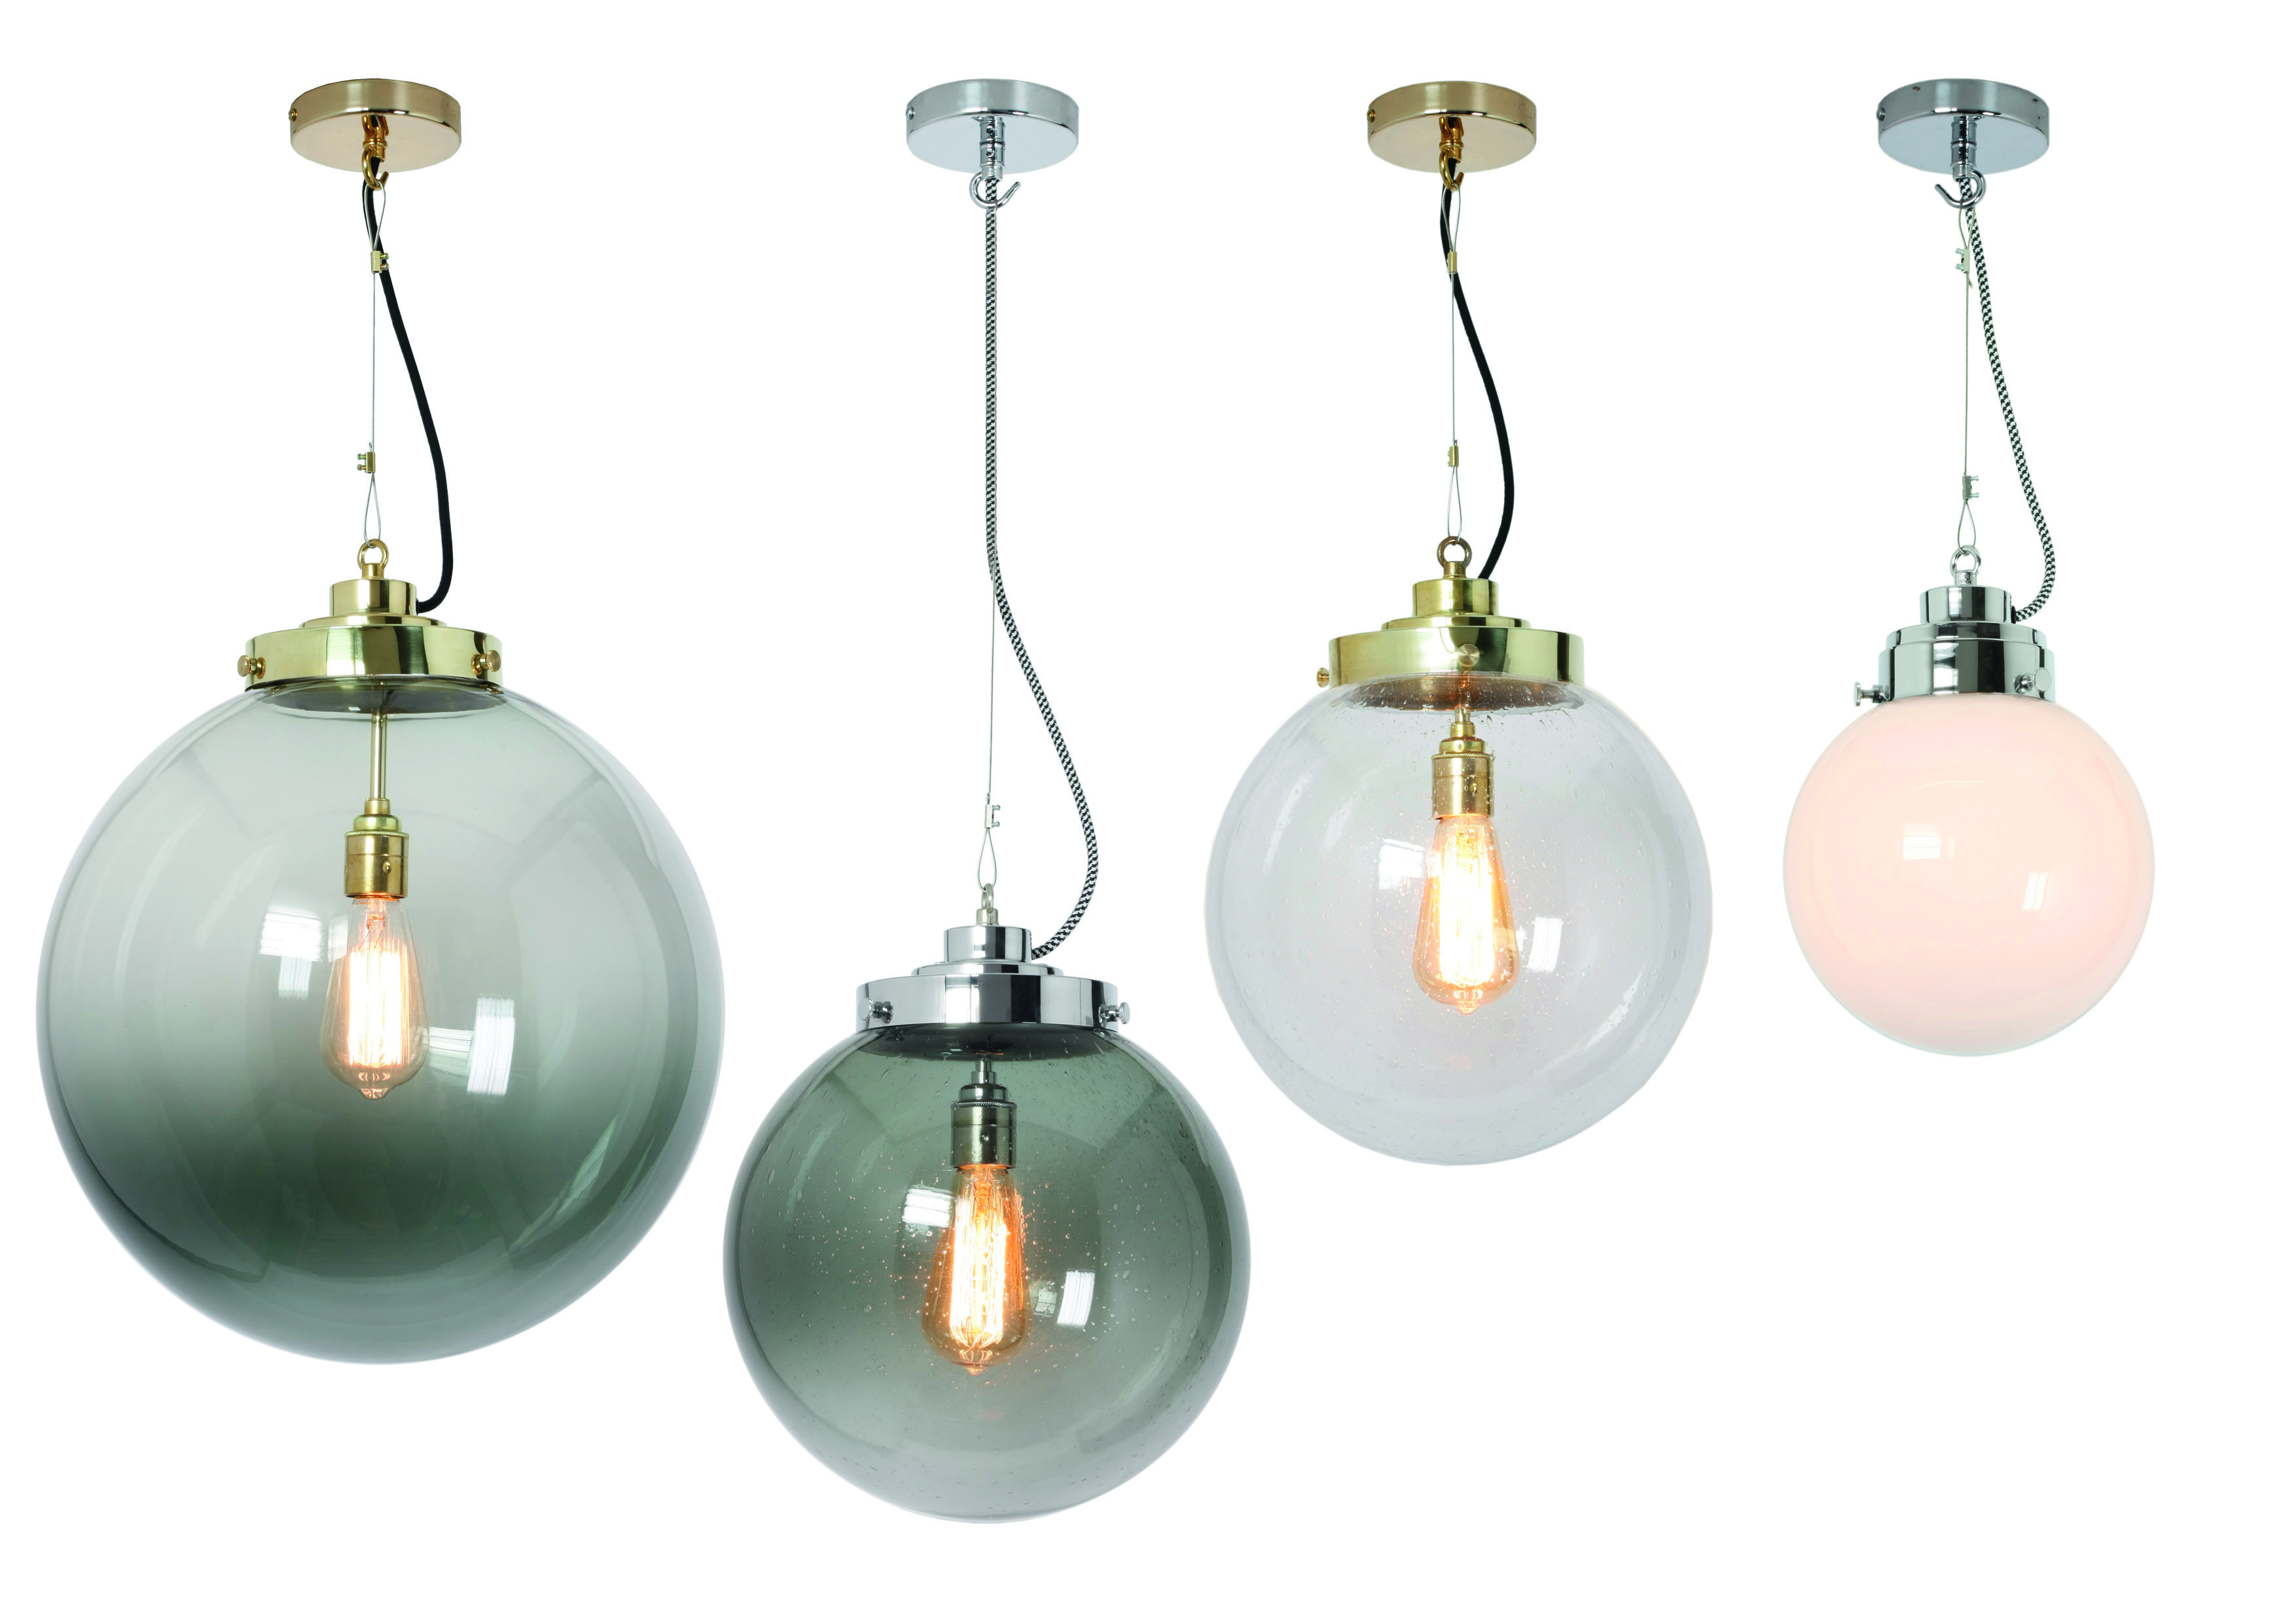 learn more at kitchensourcebookcouk axia modern lighting